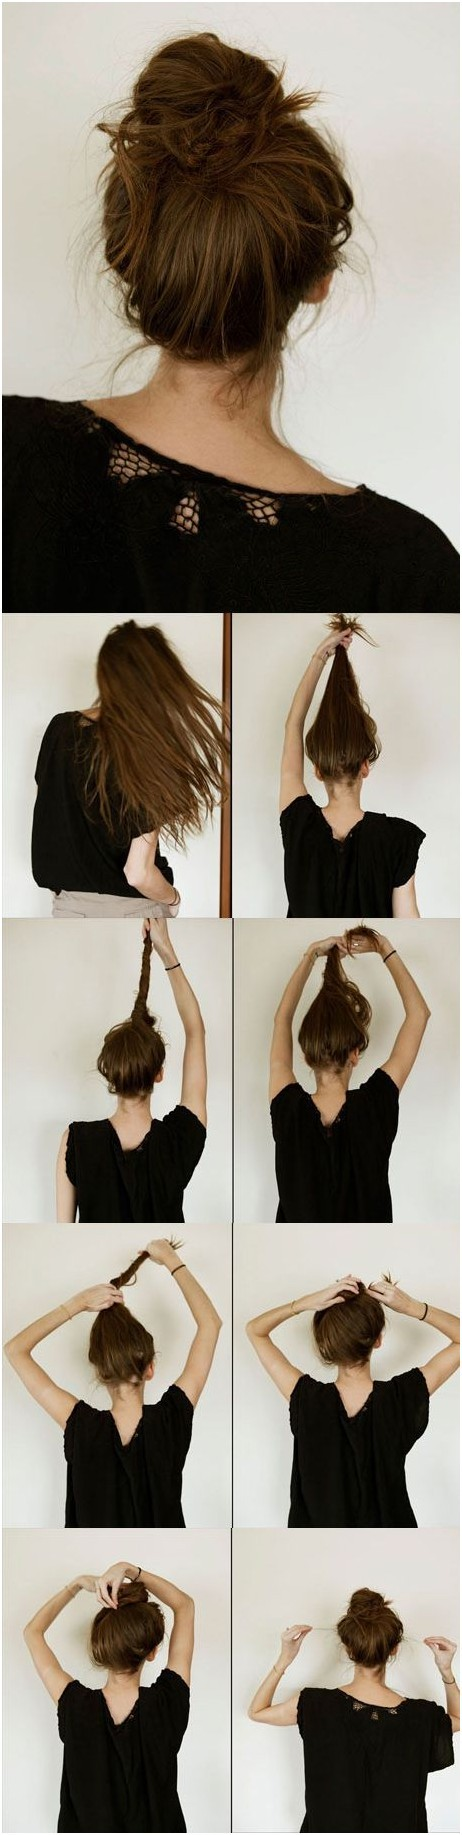 10 ways to make cute everyday hairstyles long hair tutorials everyday hairstyles tutorials casual messy bun hairstyle solutioingenieria